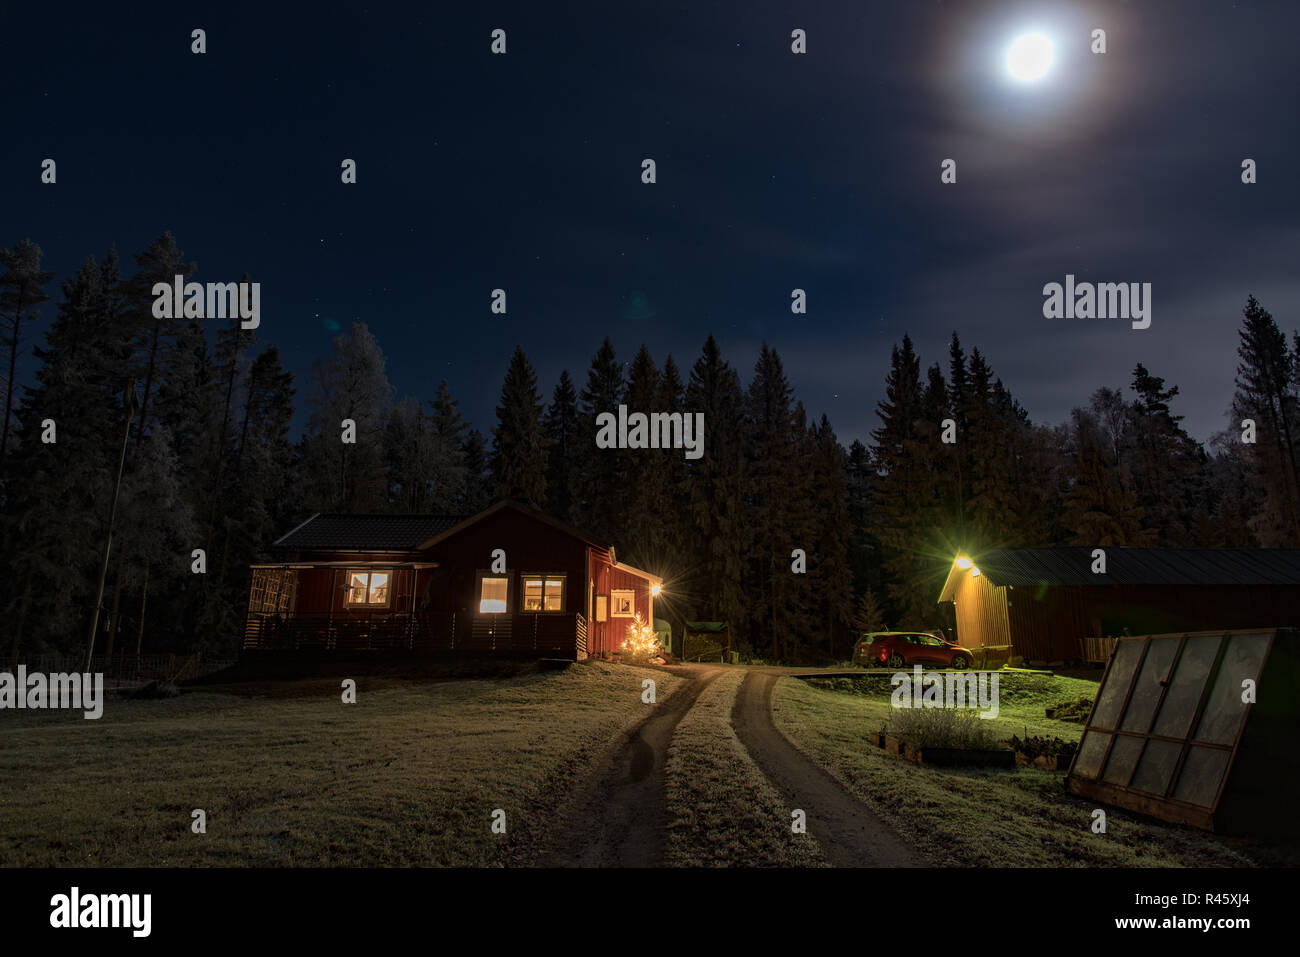 full moon shining over a little red cabin in a swedish forest - Stock Image